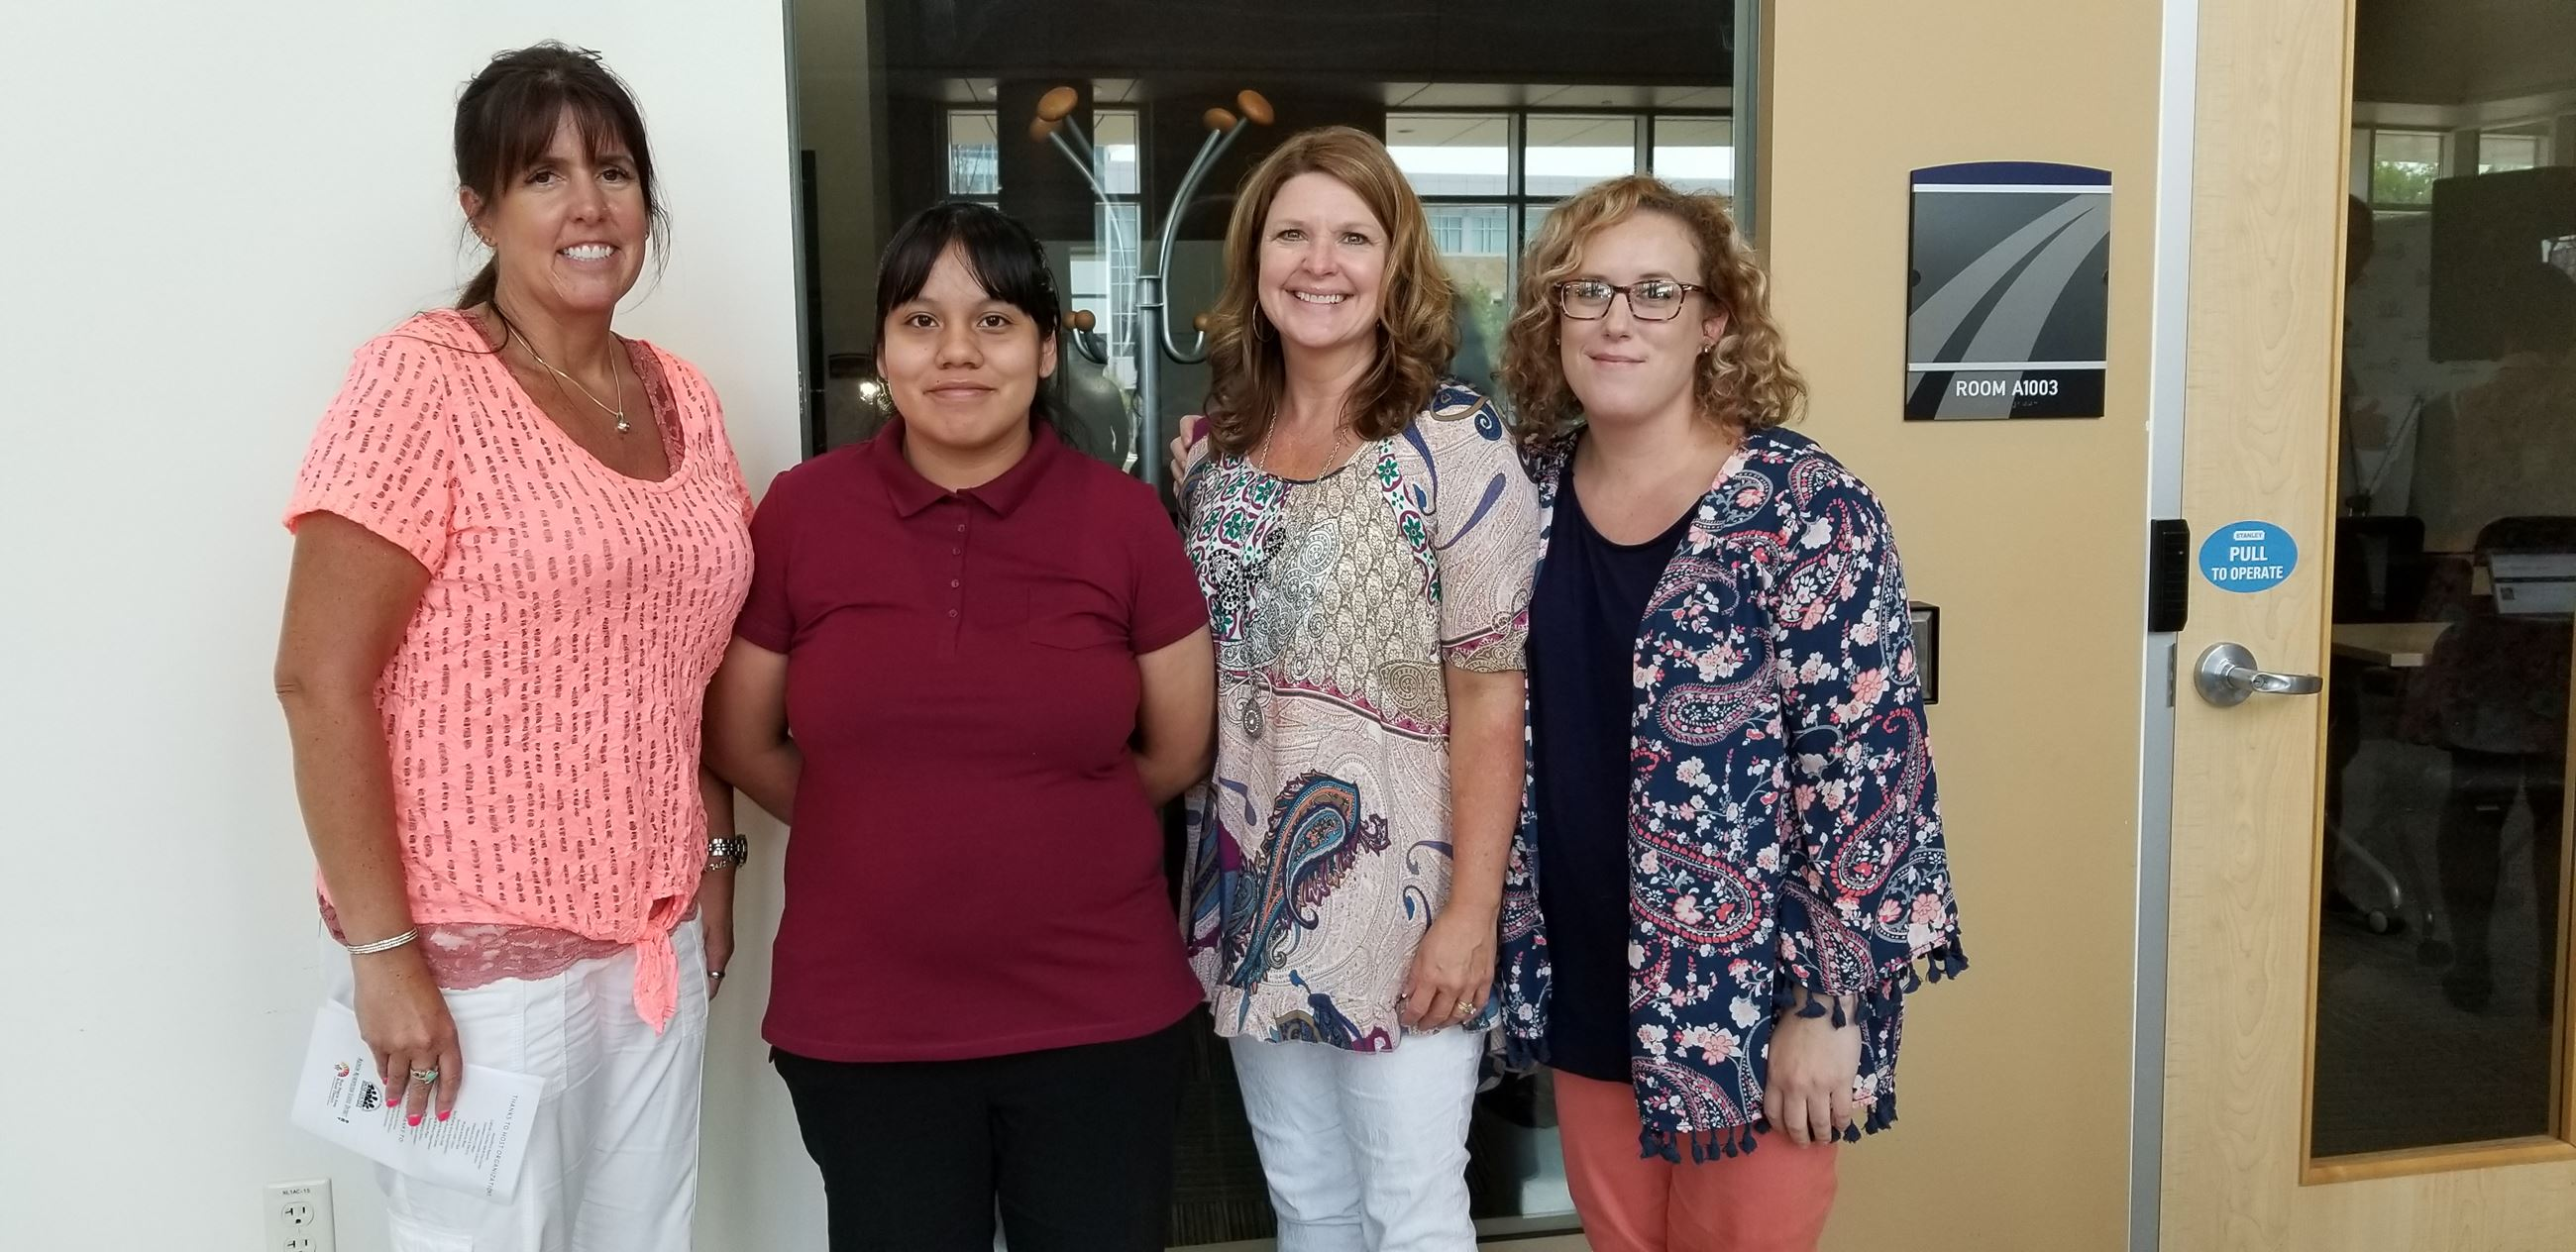 Admin. Assistant Tracy Heath, Intern Karla Contreras, Records Supervisor Kristine Pittz, Admin. Assistant Kristin Goehring